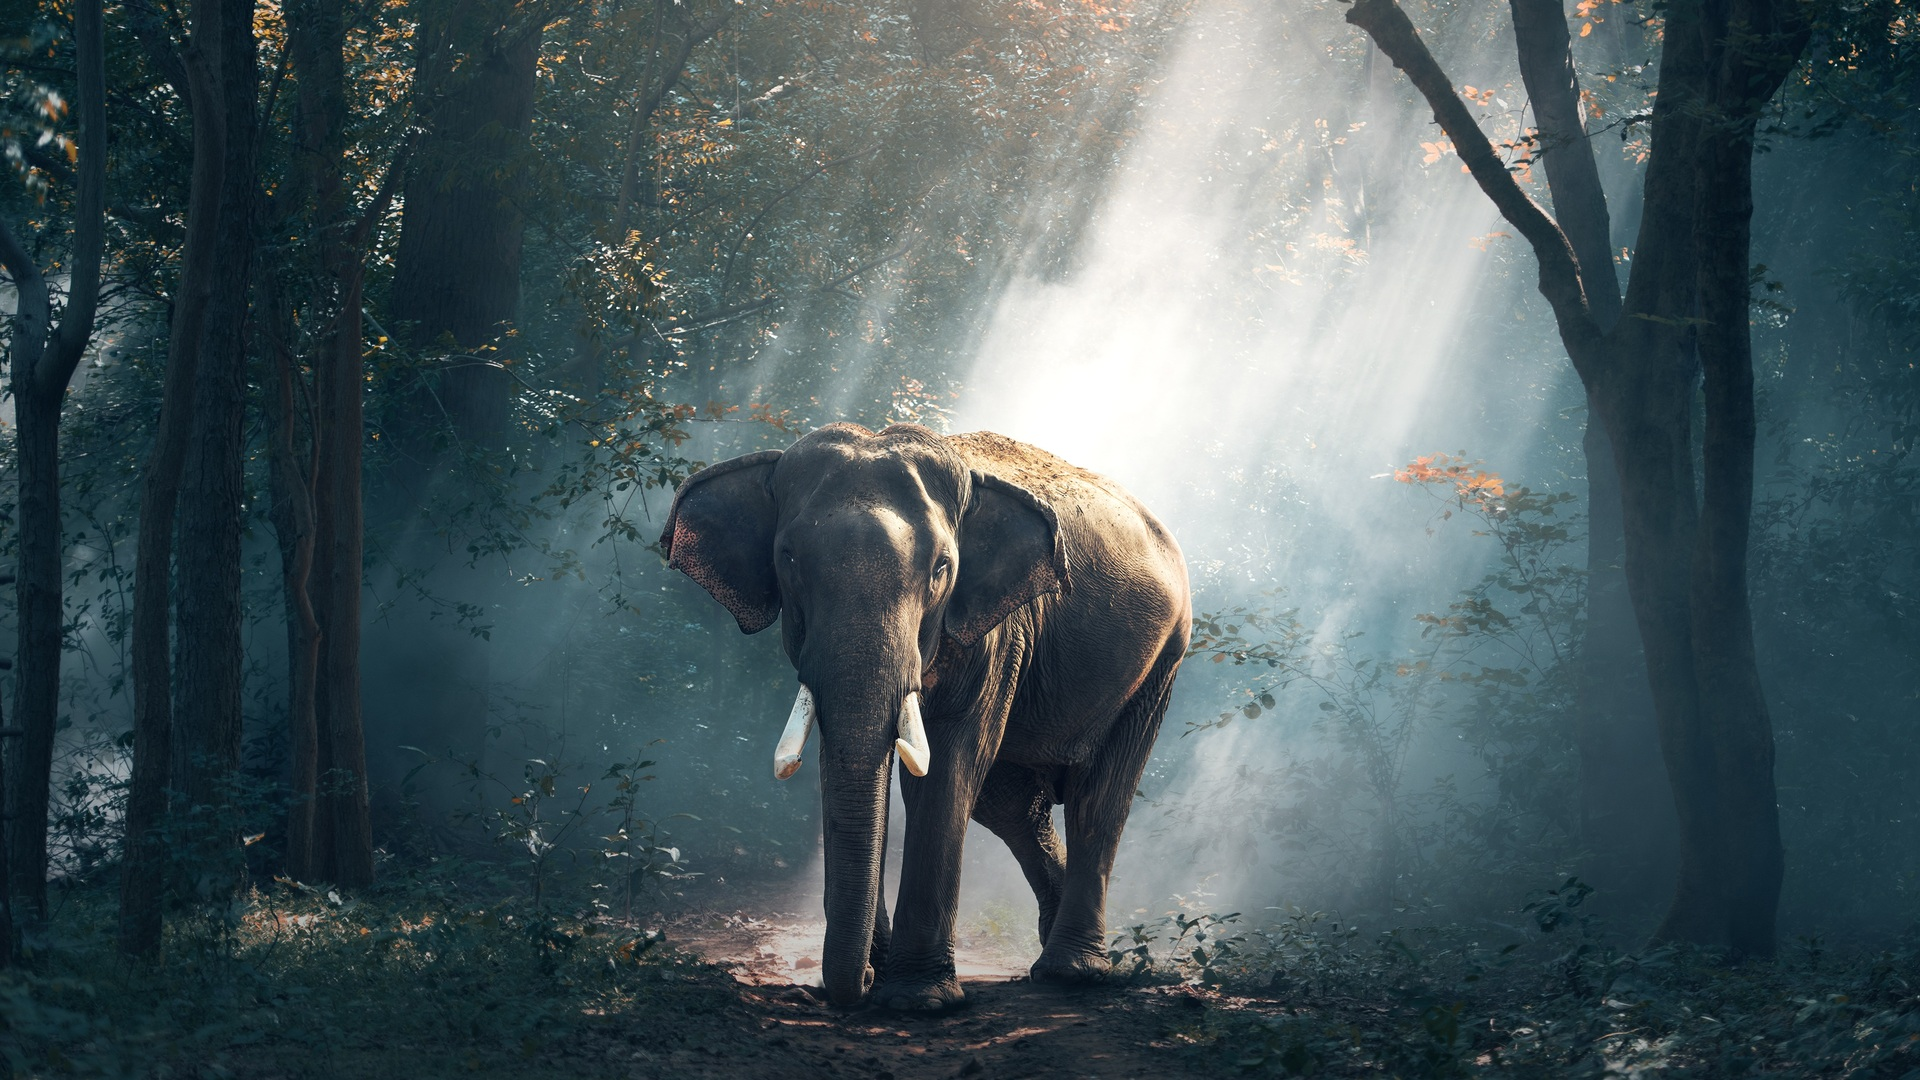 1920x1080 elephant laptop full hd 1080p hd 4k wallpapers, images